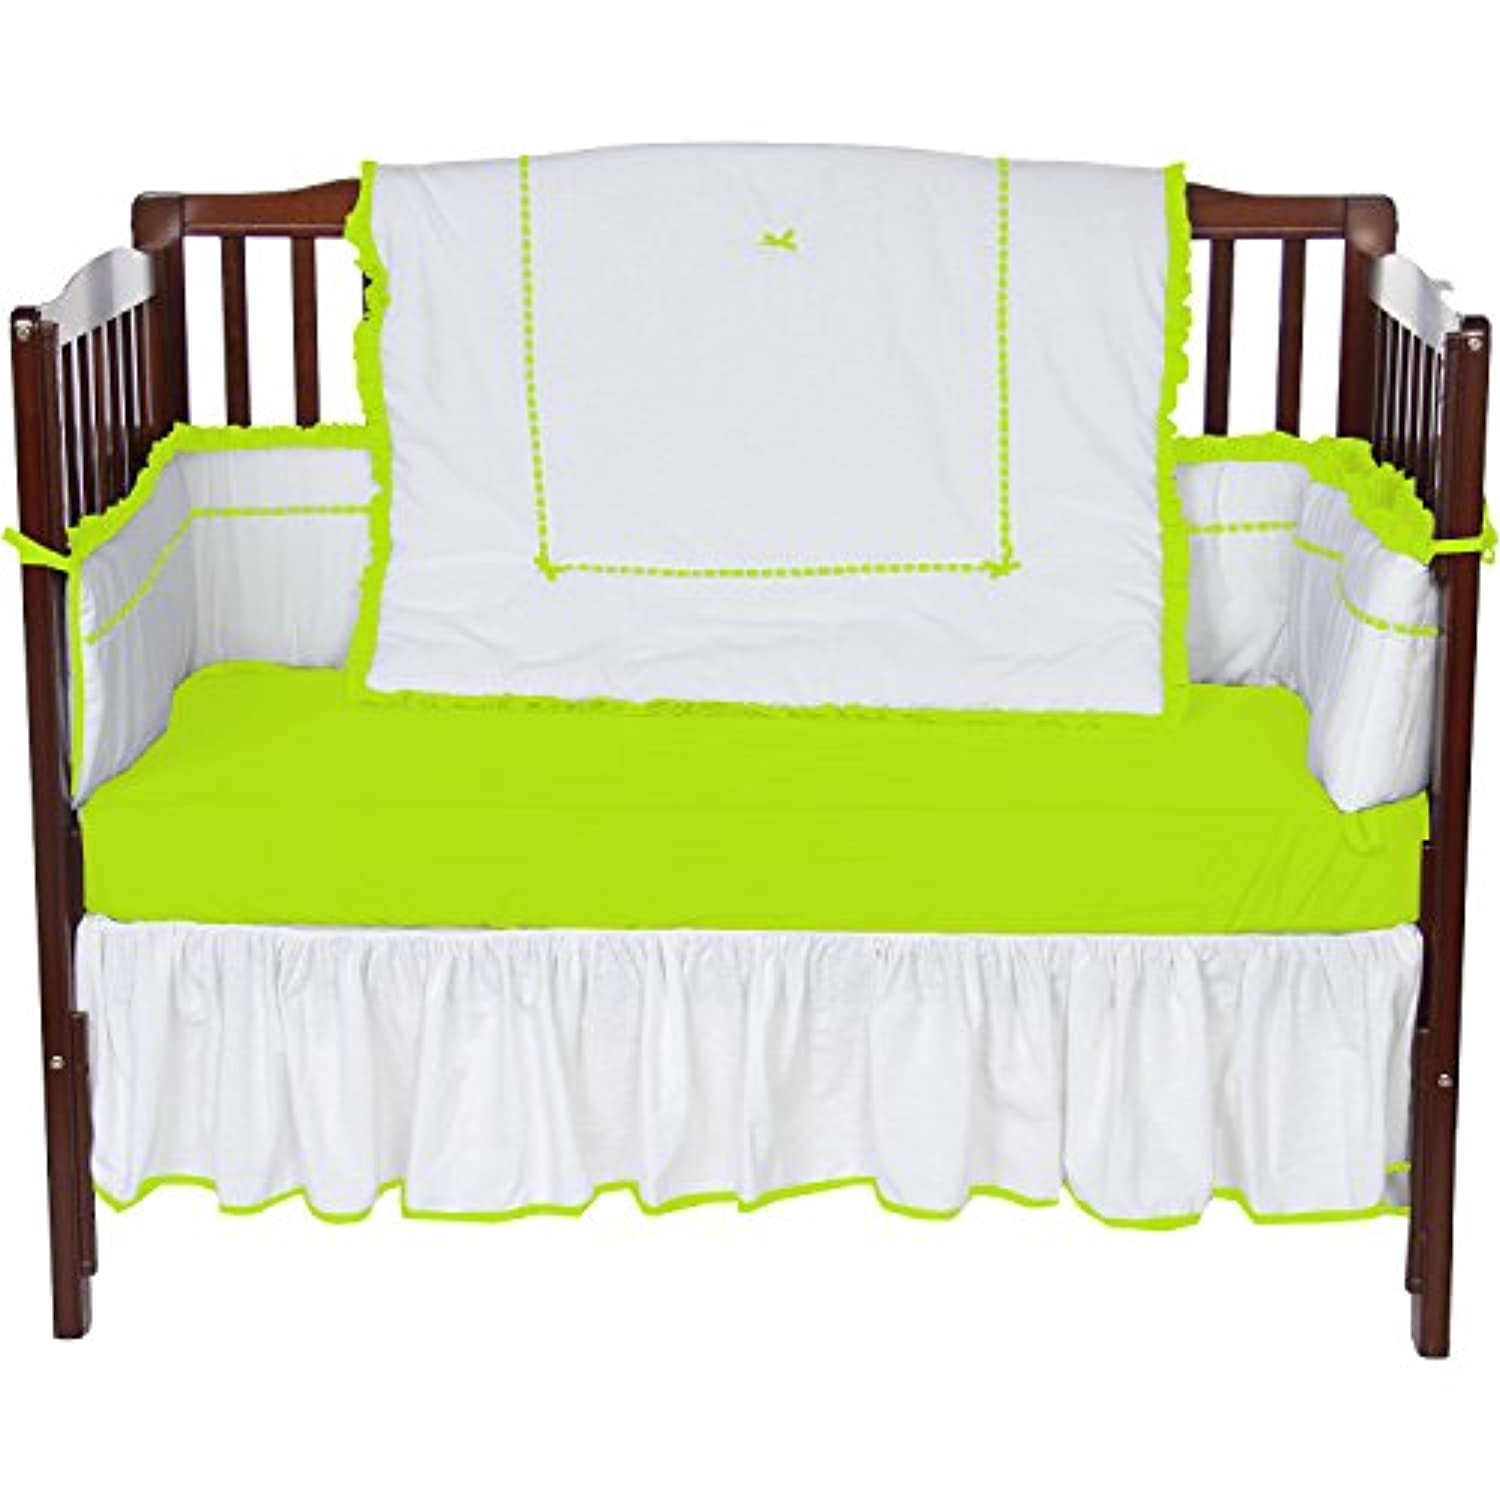 Baby Doll Bedding Unique 4 Piece Crib Bedding Set, Green Apple by BabyDoll Bedding